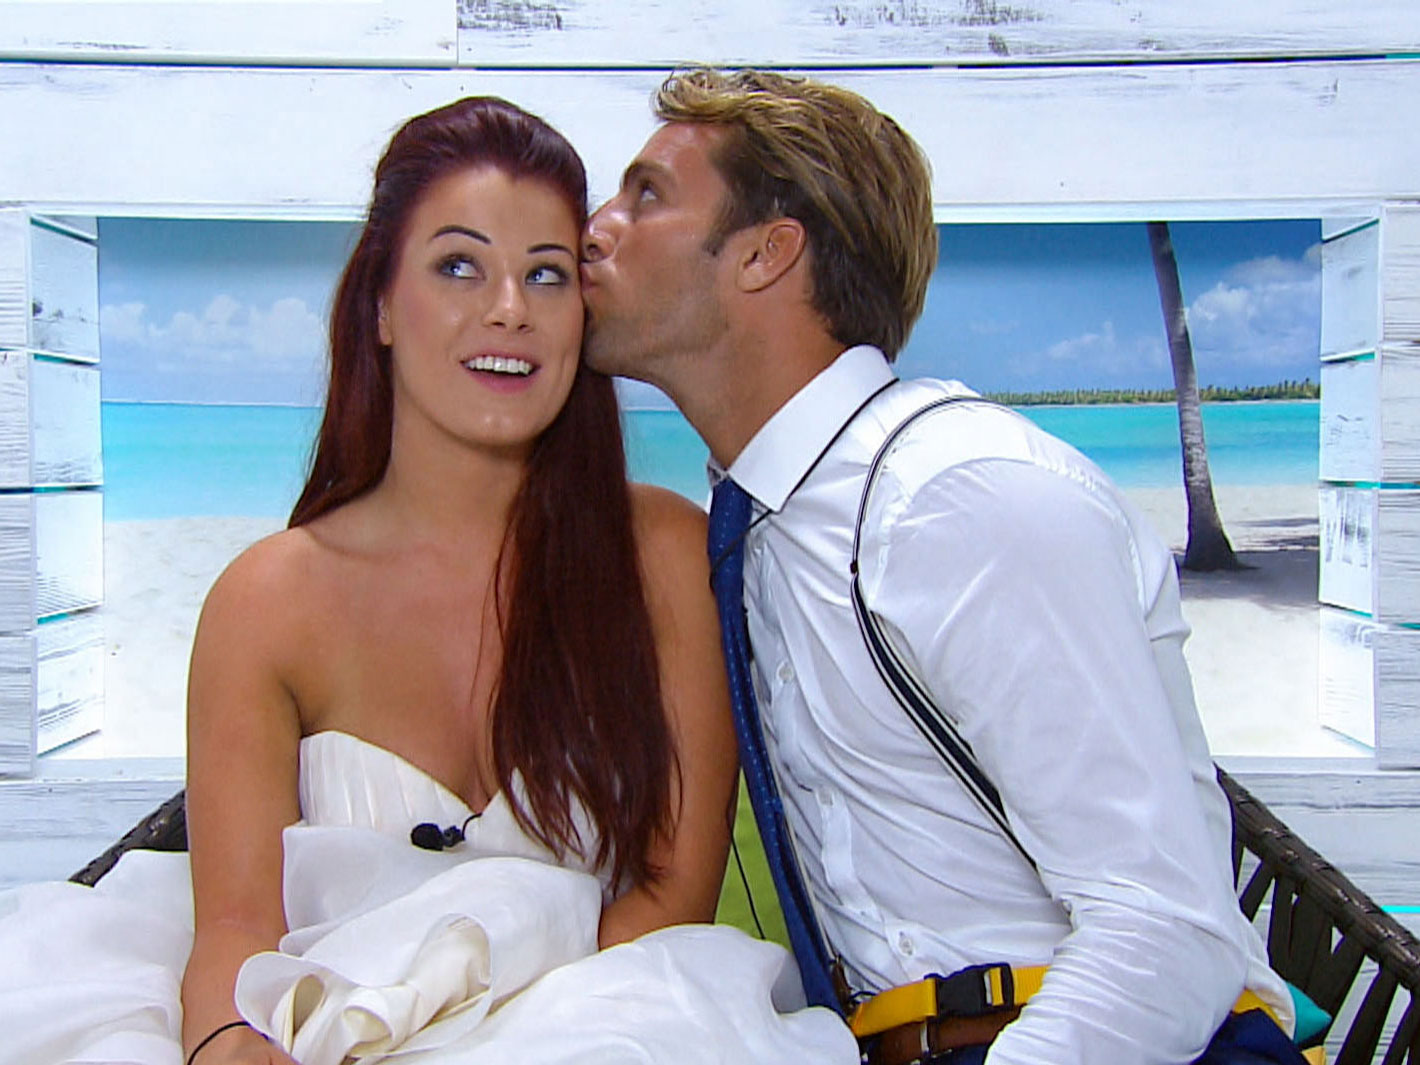 Are 2015Where Contestants Now Couples And Island Love The tsQdCrh